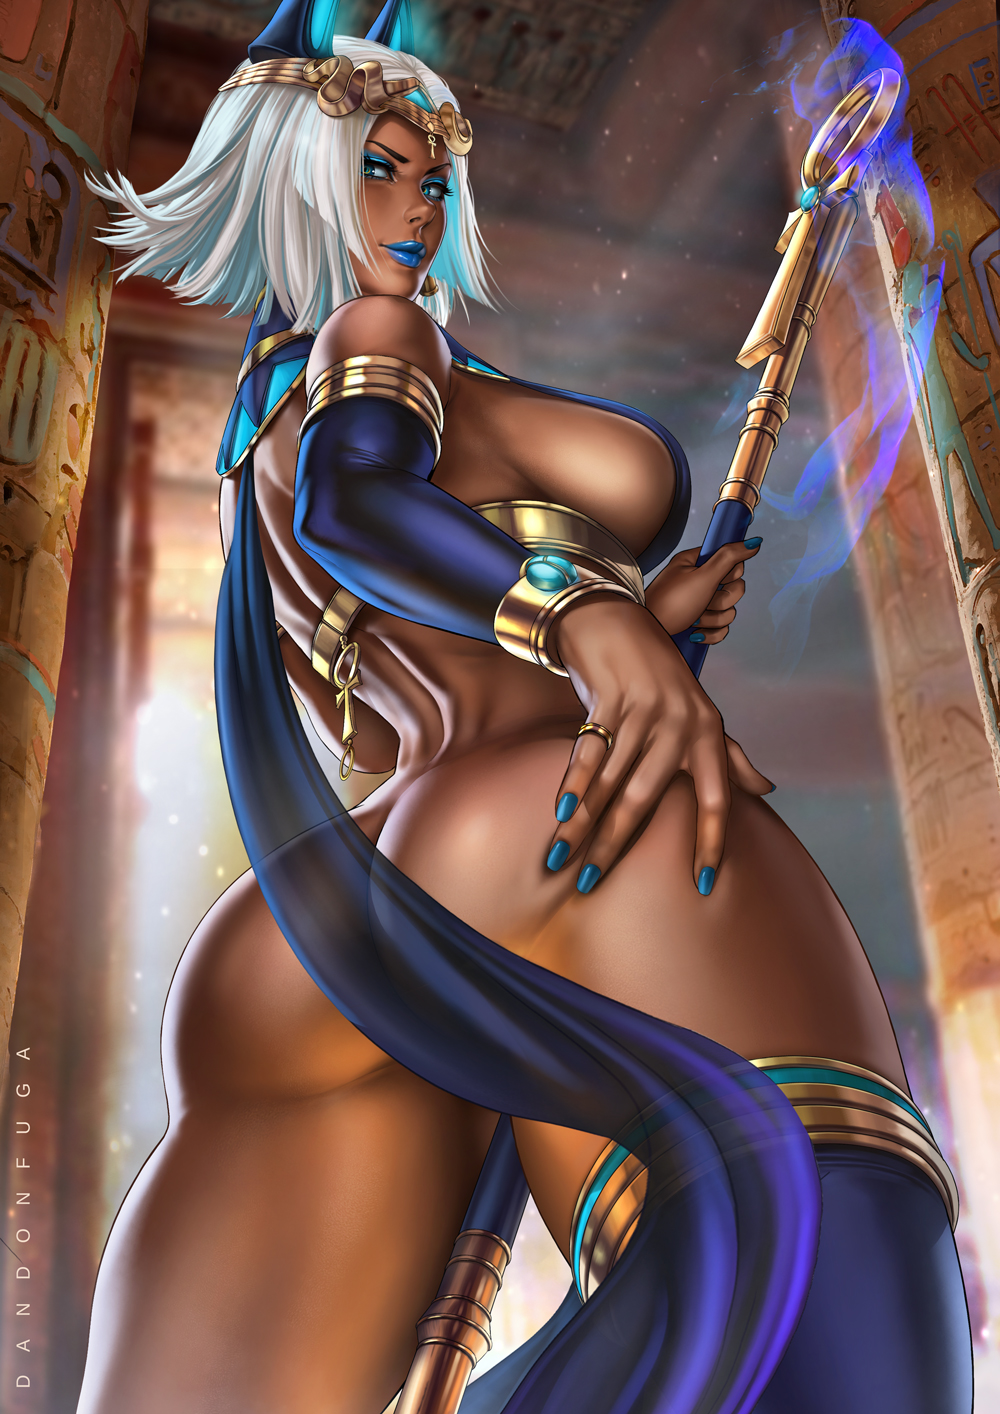 1girl ass blue_eyes blue_hair breasts dandon_fuga dark_skin egyptian_clothes highres jewelry large_breasts light_smile looking_at_viewer looking_back looking_down original parted_lips short_hair sideboob solo spread_ass staff thong